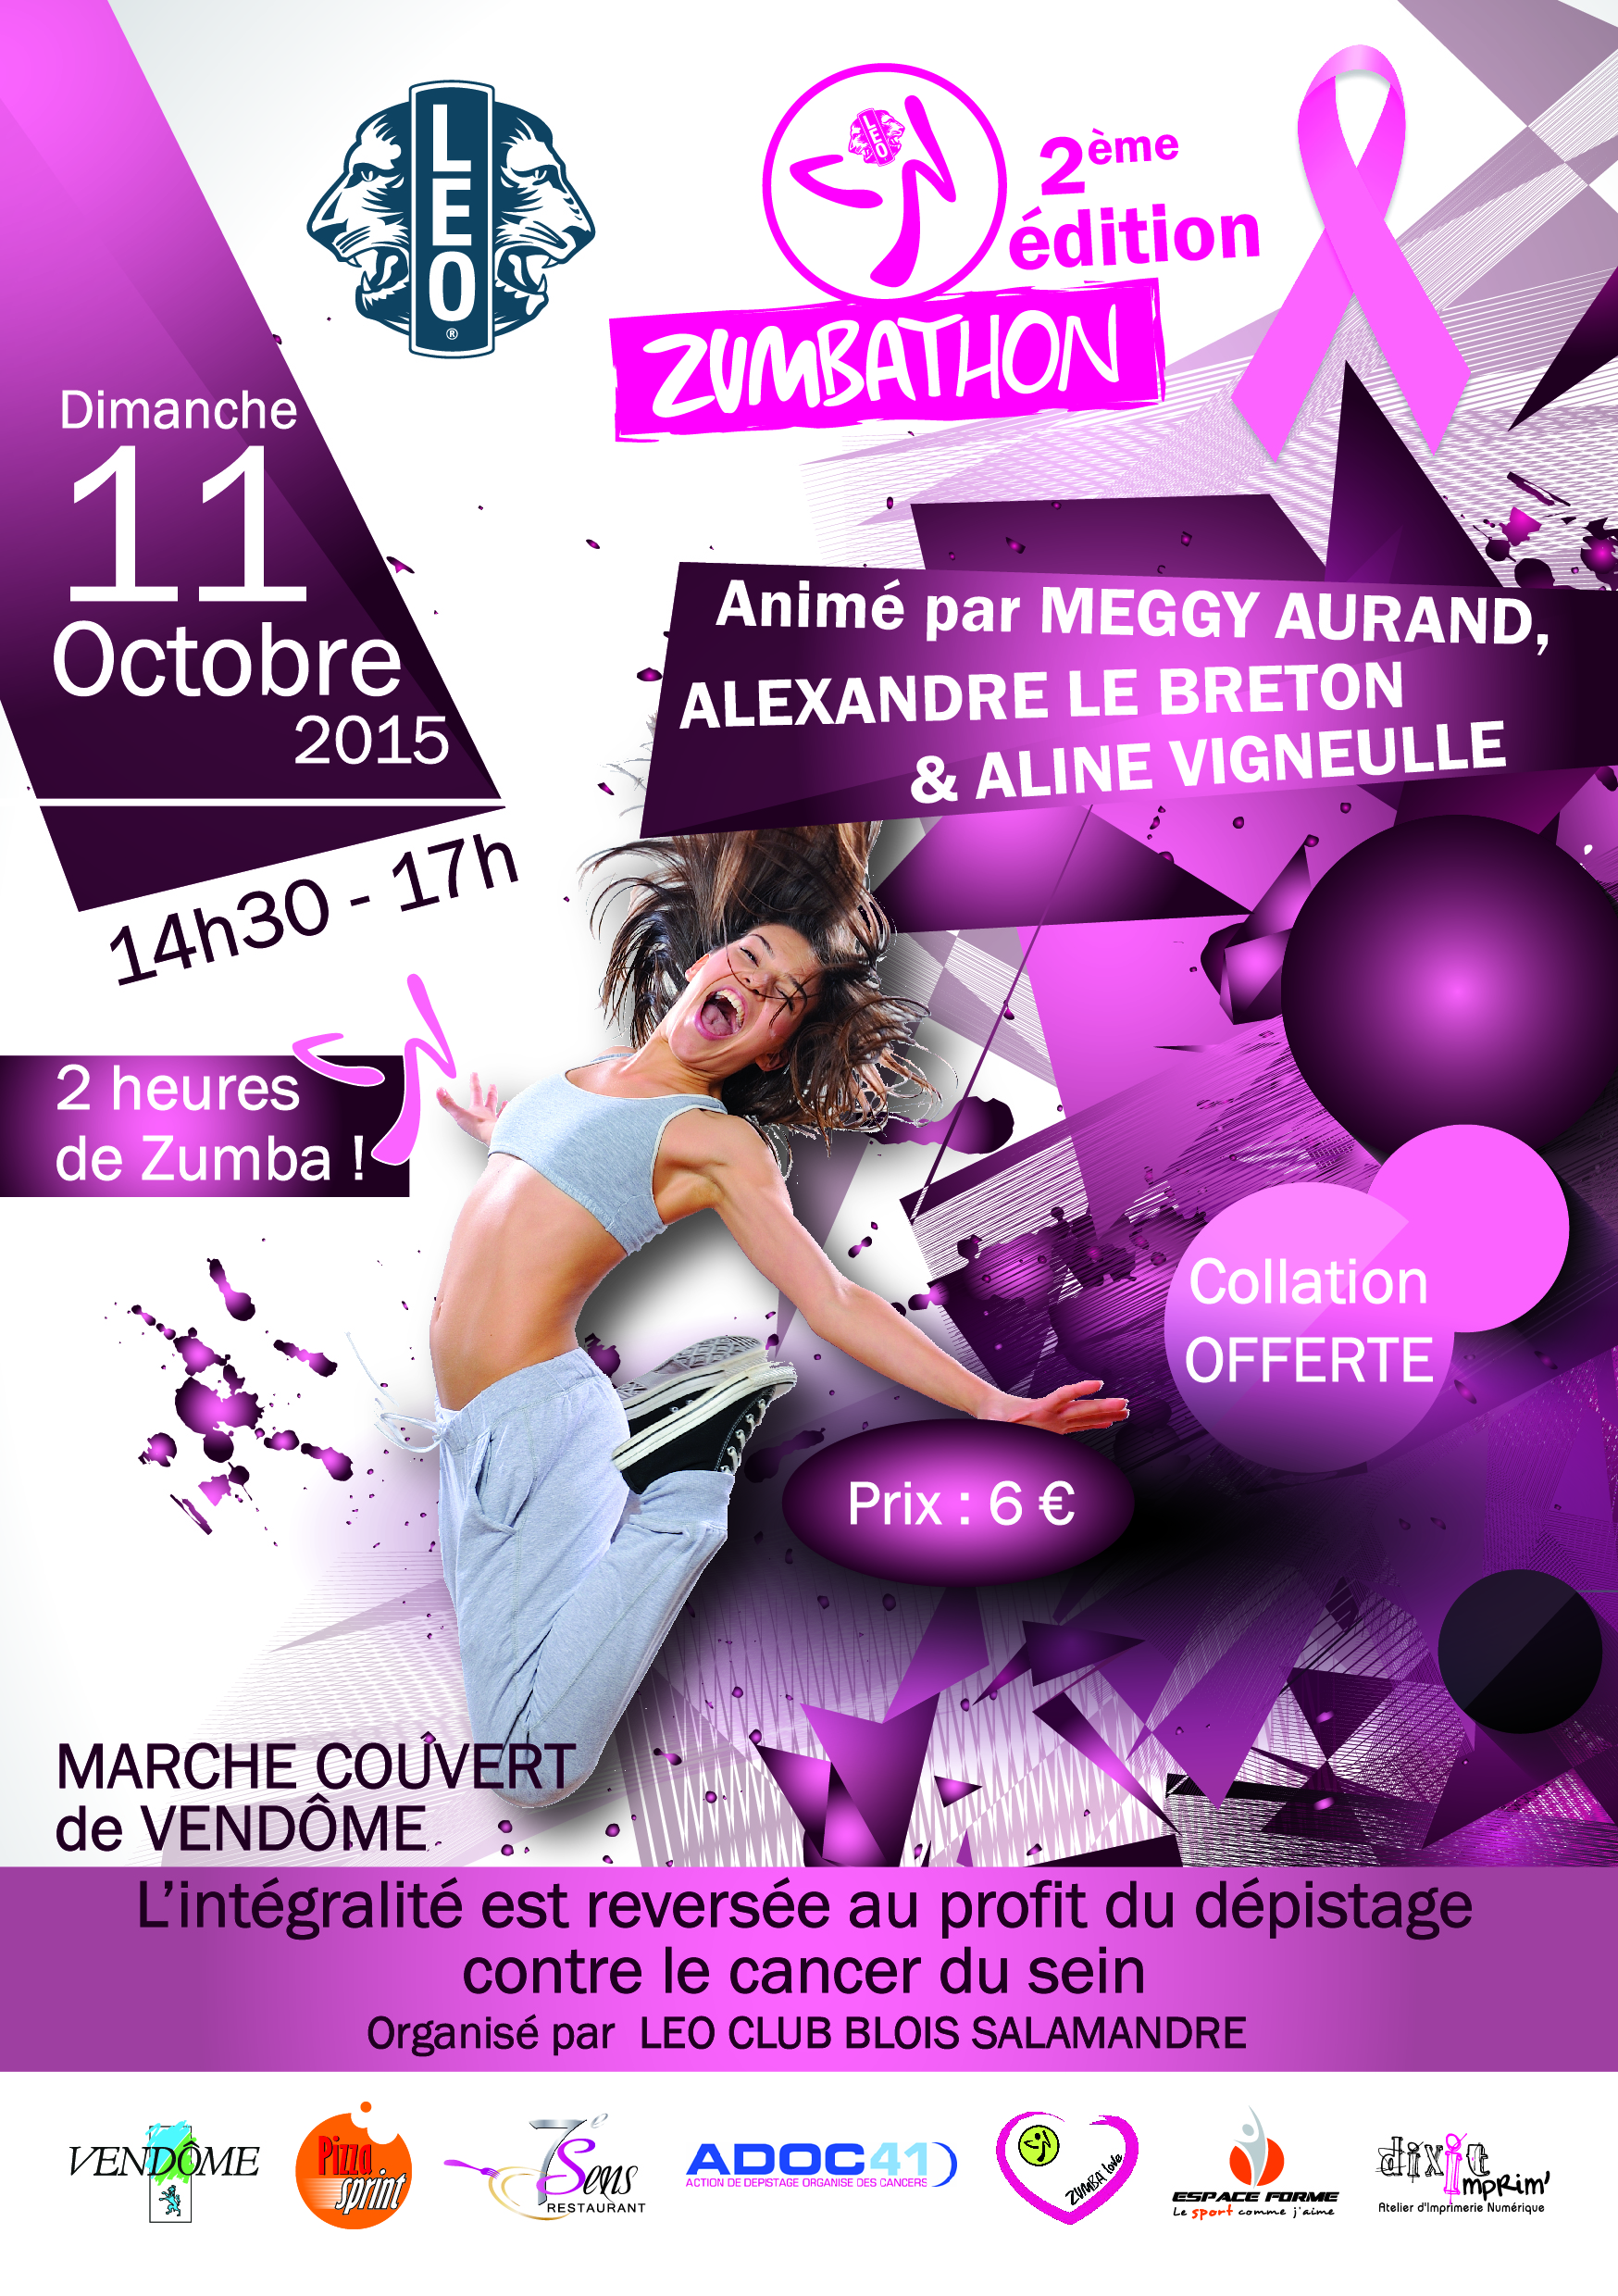 ZUMBATHON 2 OCTOBRE ROSE 01 01